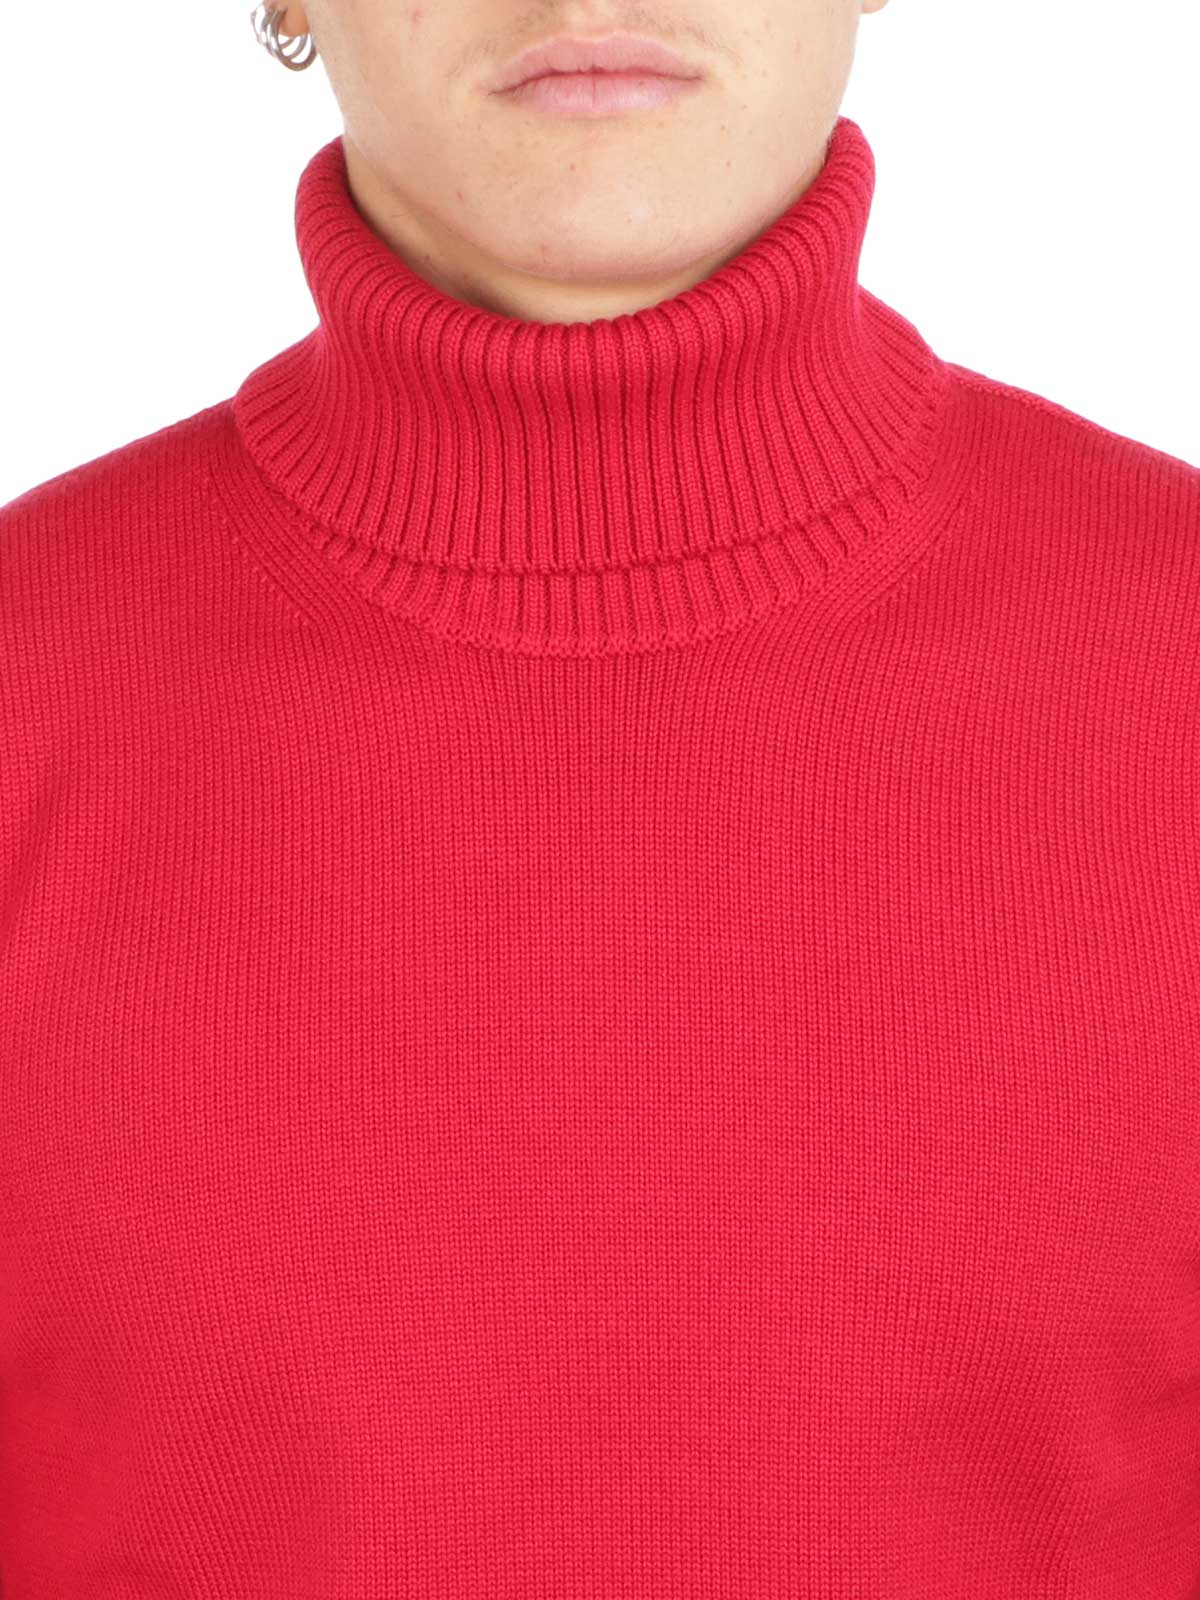 Picture of ALTEA | Men's Wool Turtleneck Sweater